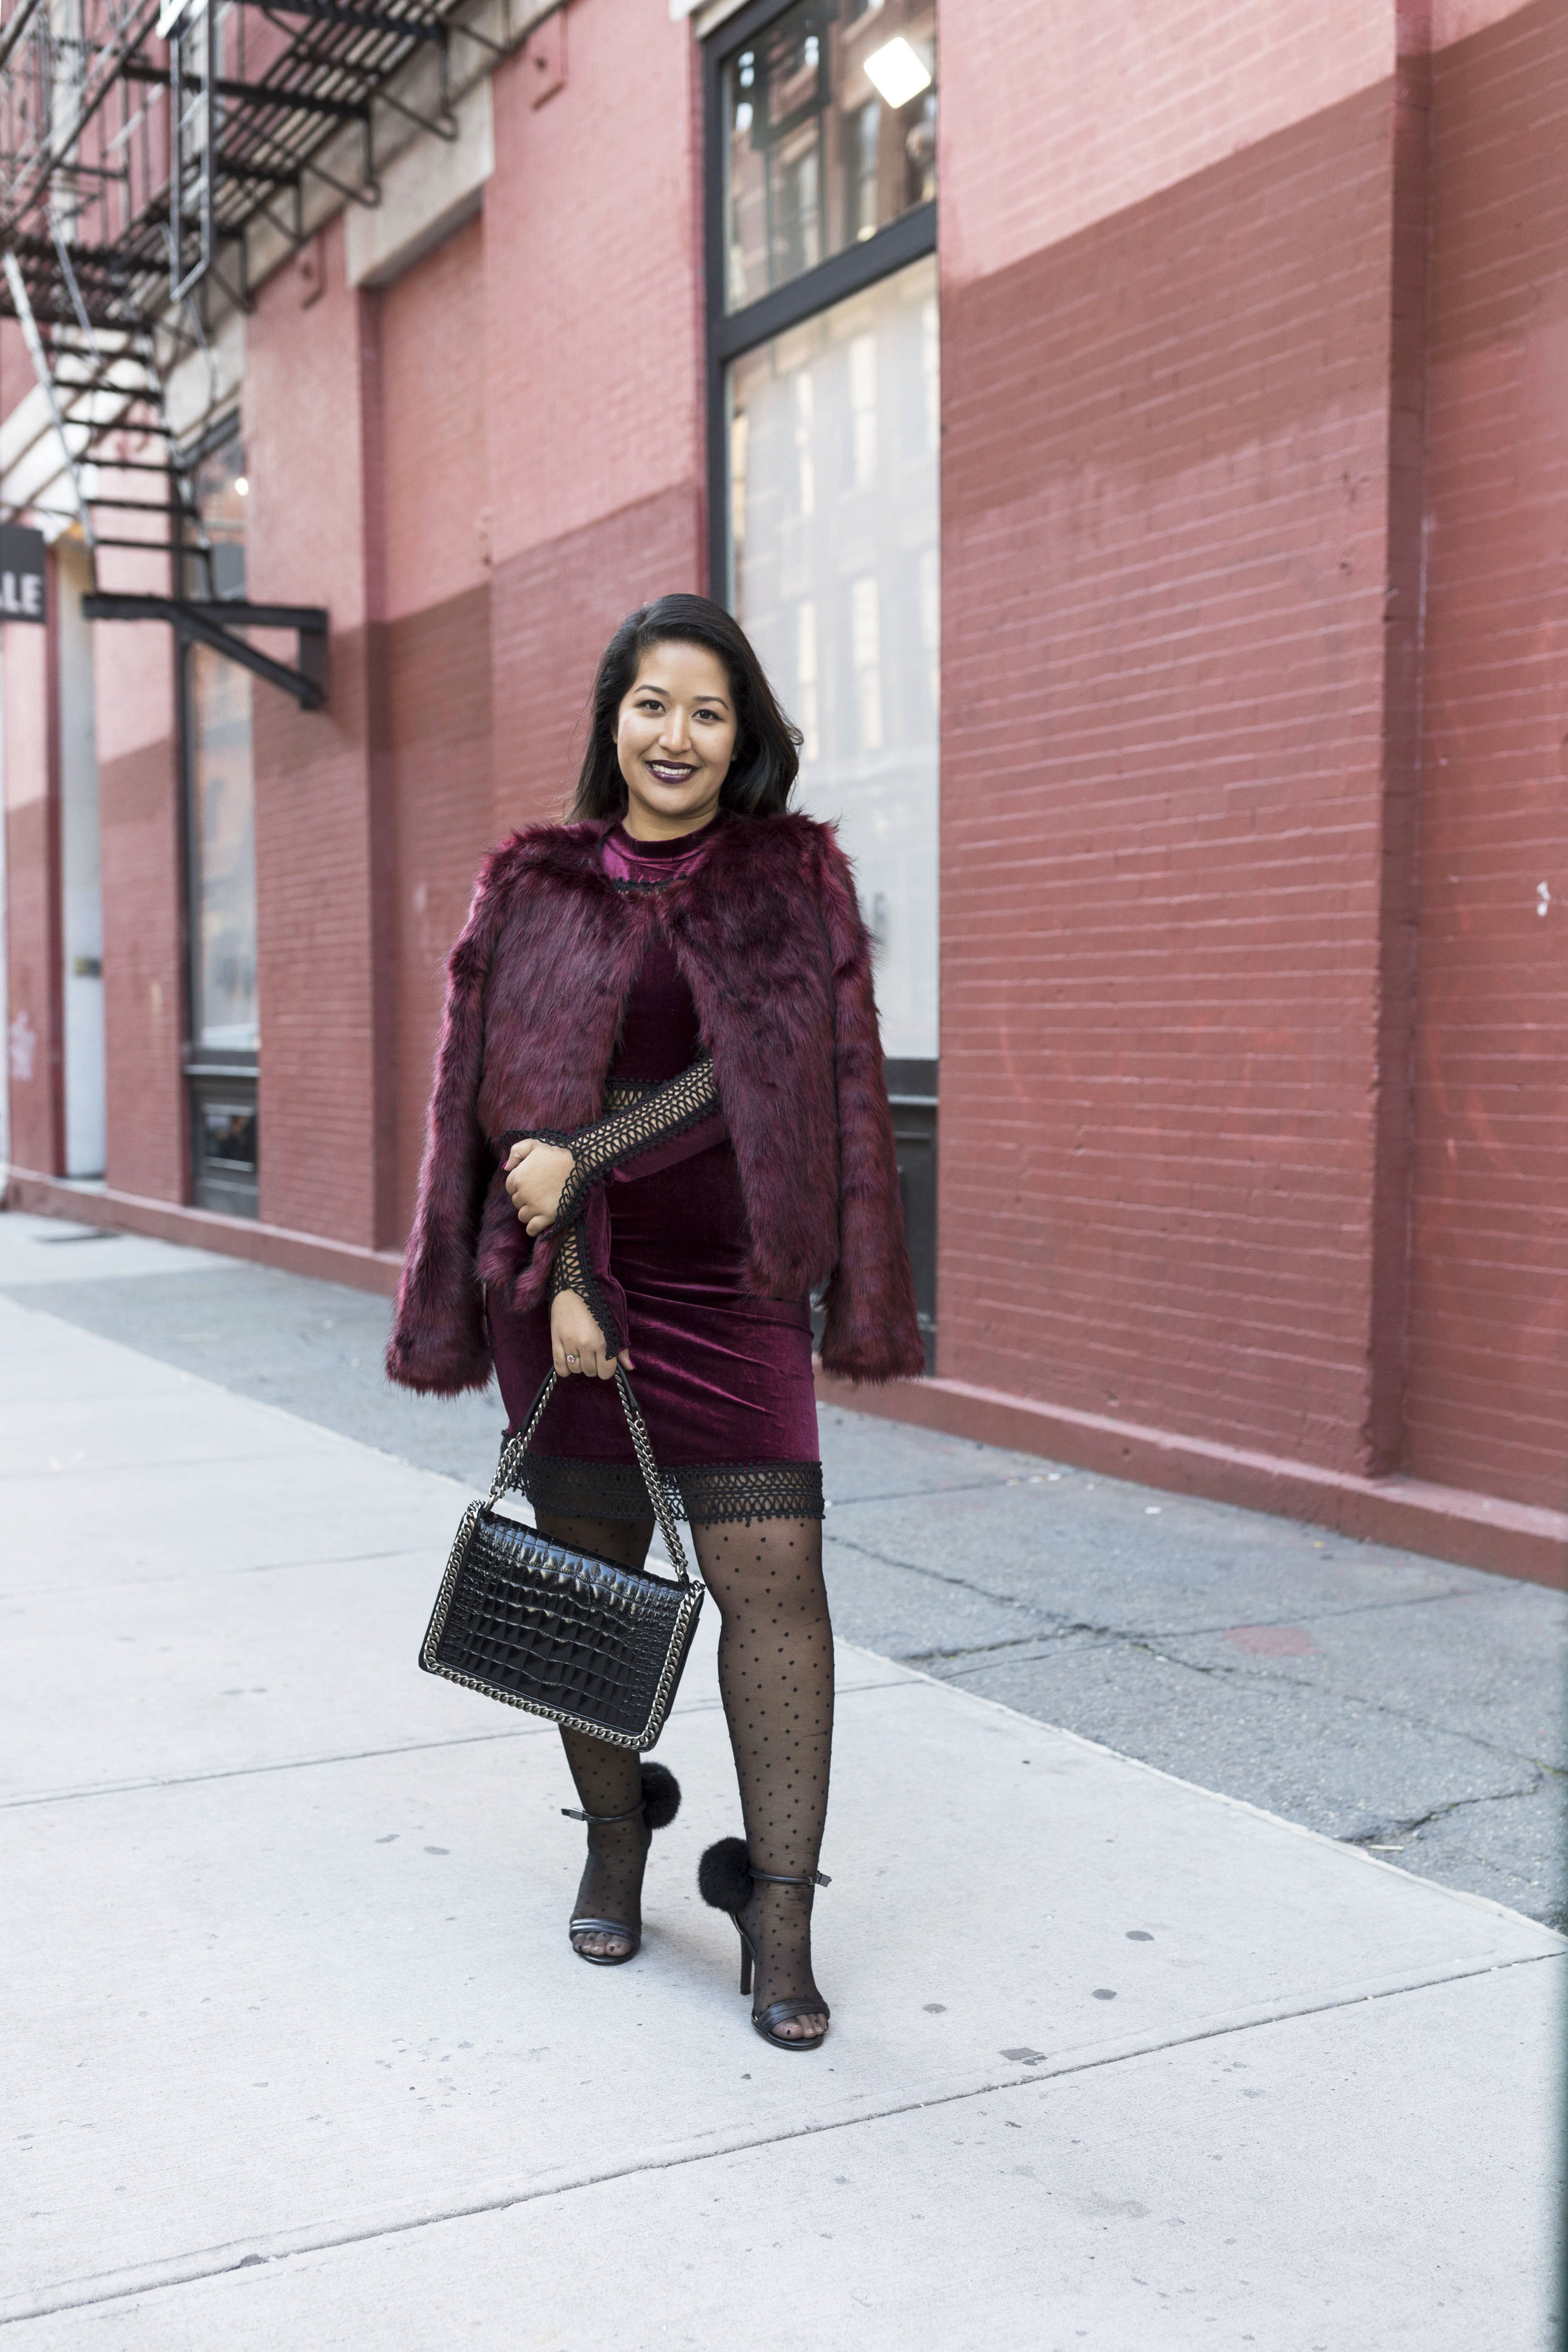 Krity S x Holiday Outfit x Century 21 Burgundy Velvet Dress and Faux Fur5.jpg